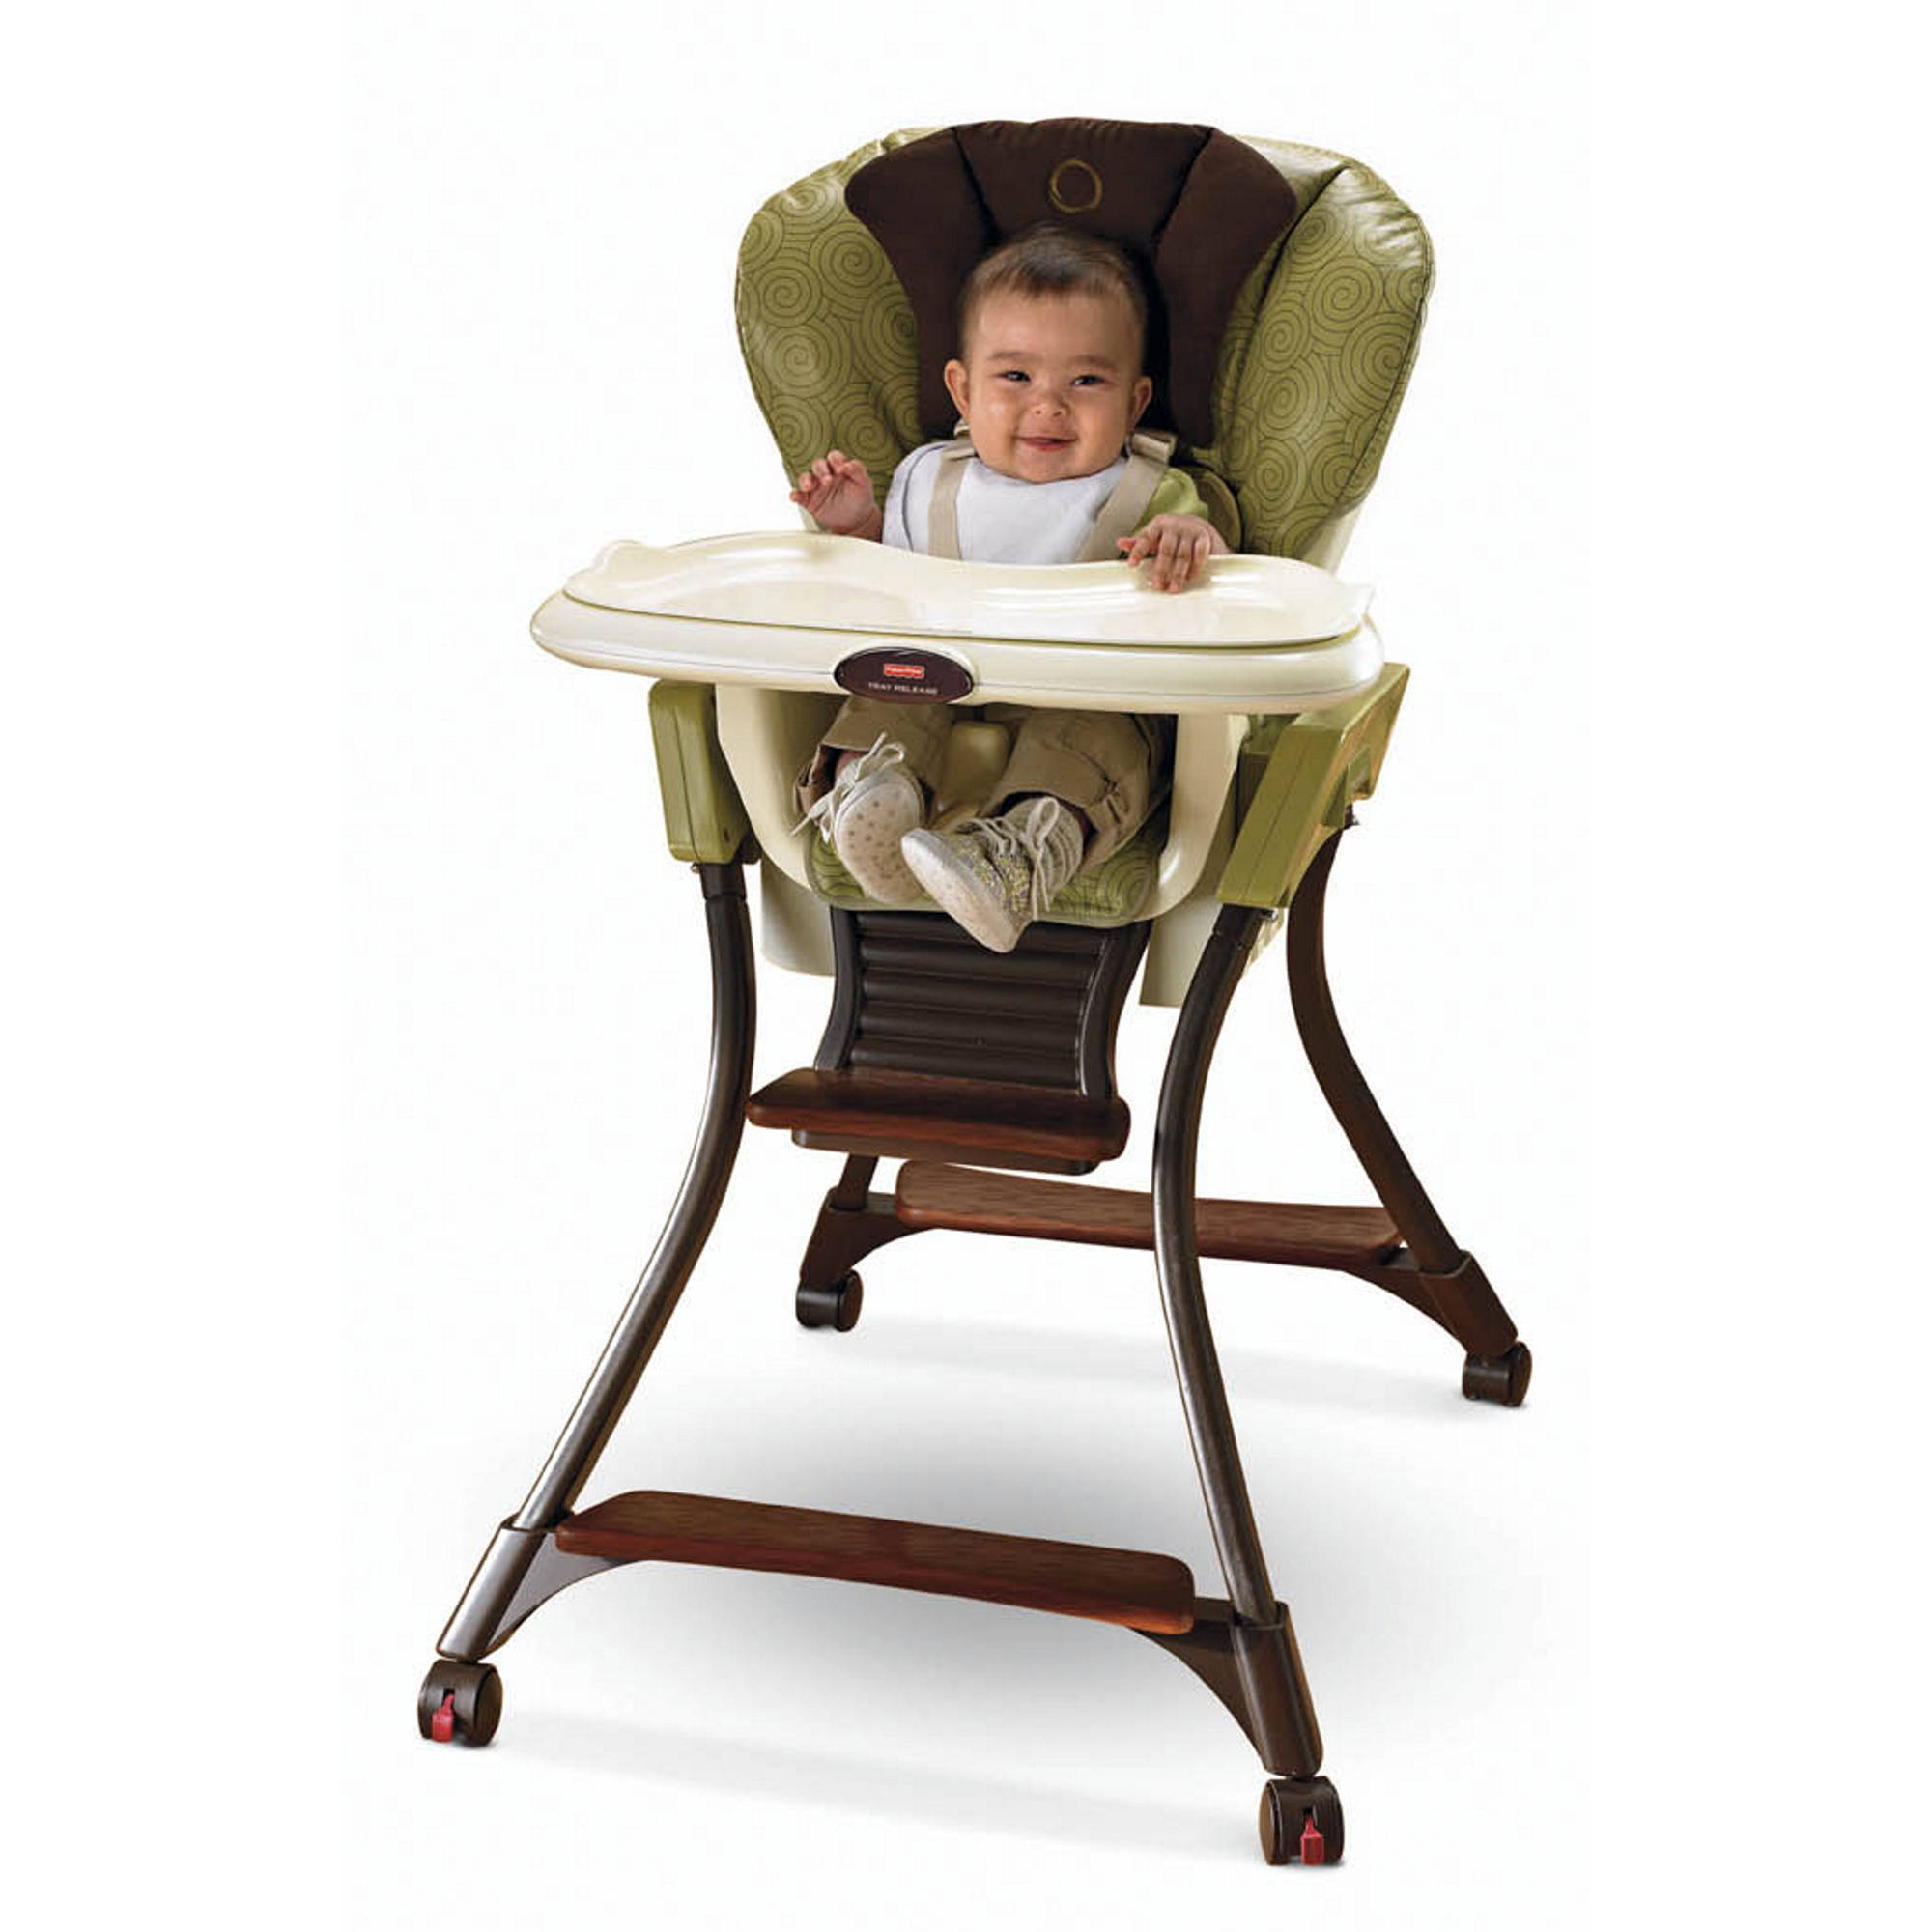 Top 10 Best High Chairs for Babies  Shopcalypsecom